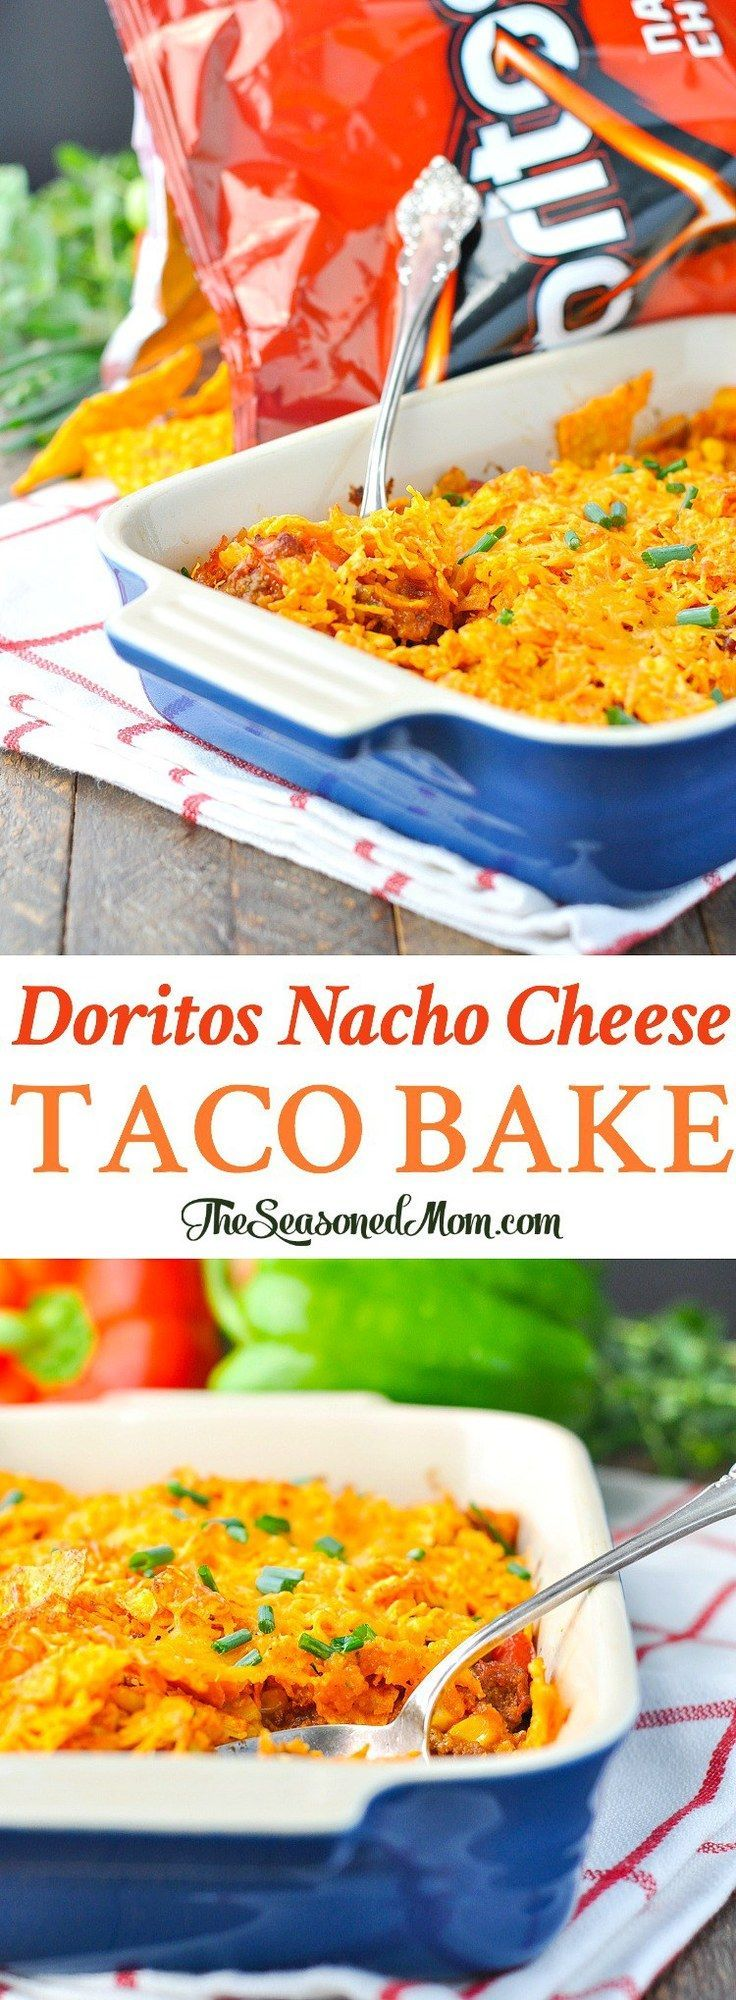 An easy twist on Mexican food for dinner, this Doritos Nacho Cheese Taco Bake is a fun casserole that will make your family smile! Lean ground taco meat and veggies are topped with shredded cheese and crumbled Doritos tortilla chips for a delicious, flavorful, and simple one dish meal!